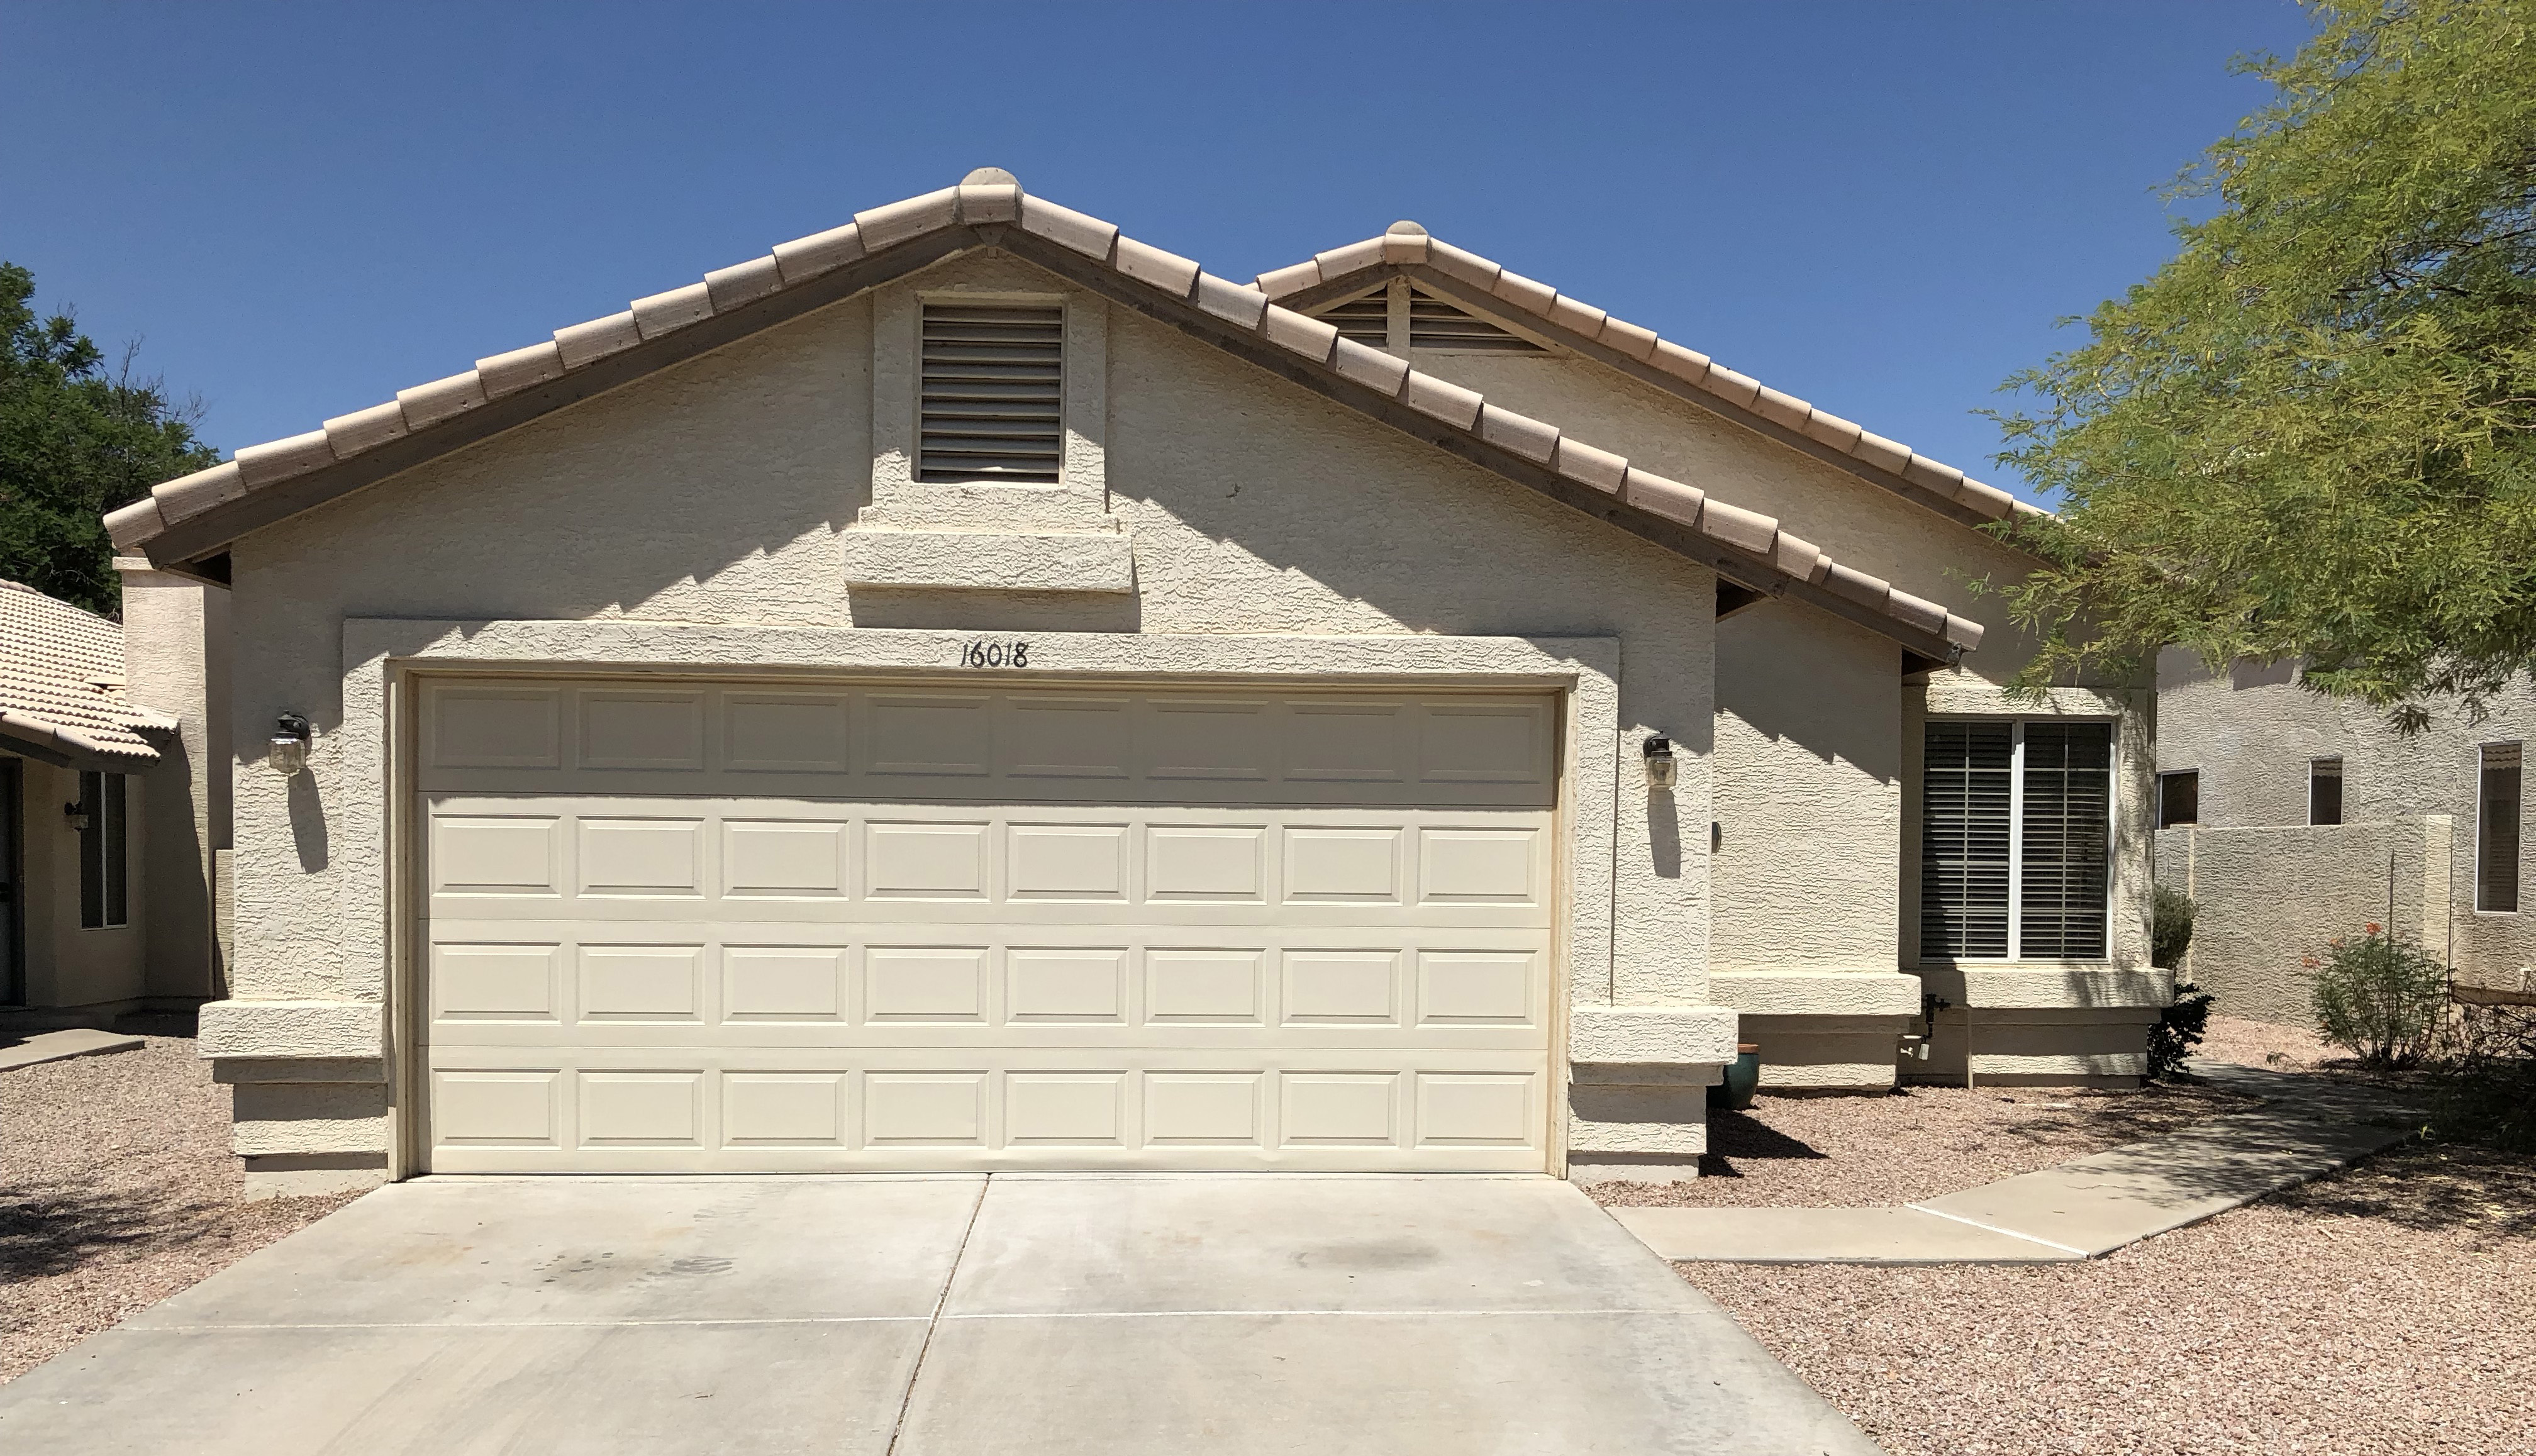 Sold 16018 S 45th St Phoenix Az 85048 Ahwatukee Foothills Do